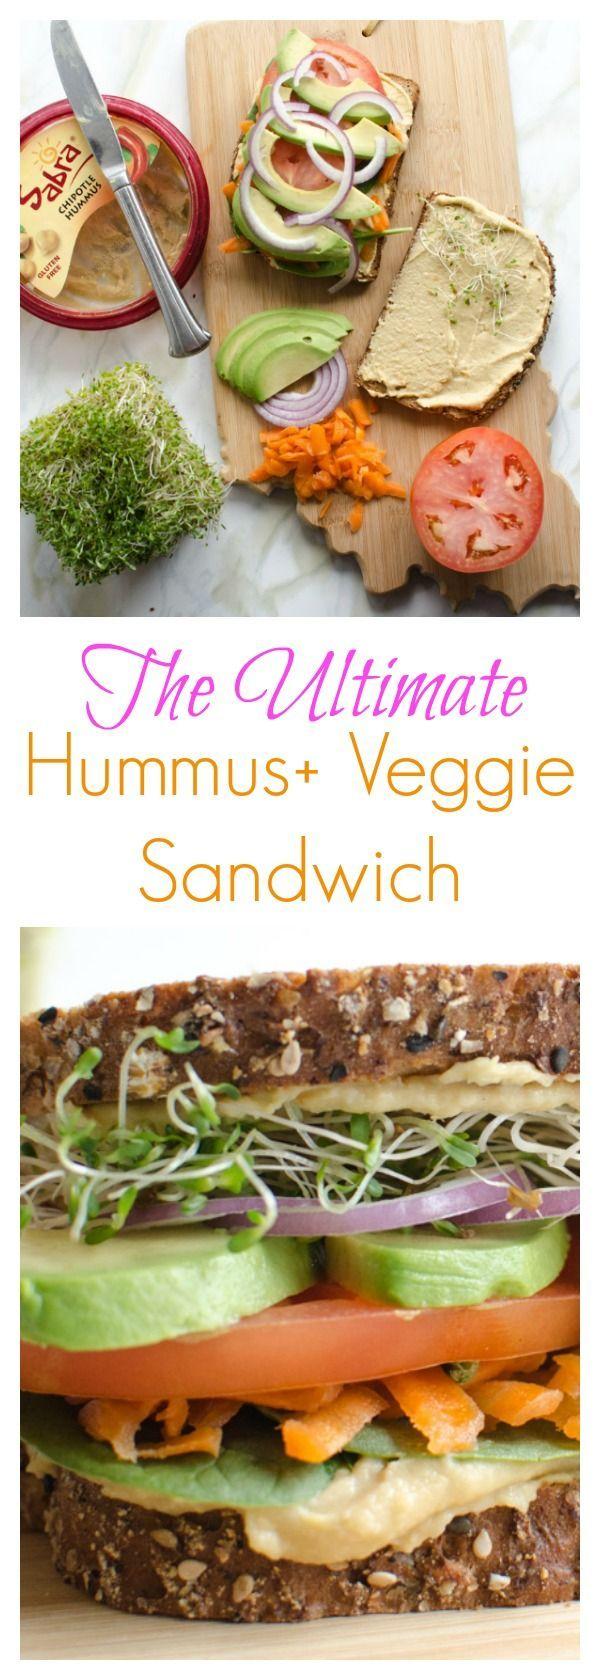 122 best lunch images on pinterest vegan meals clean eating the ultimate hummus and veggie sandwich forumfinder Choice Image